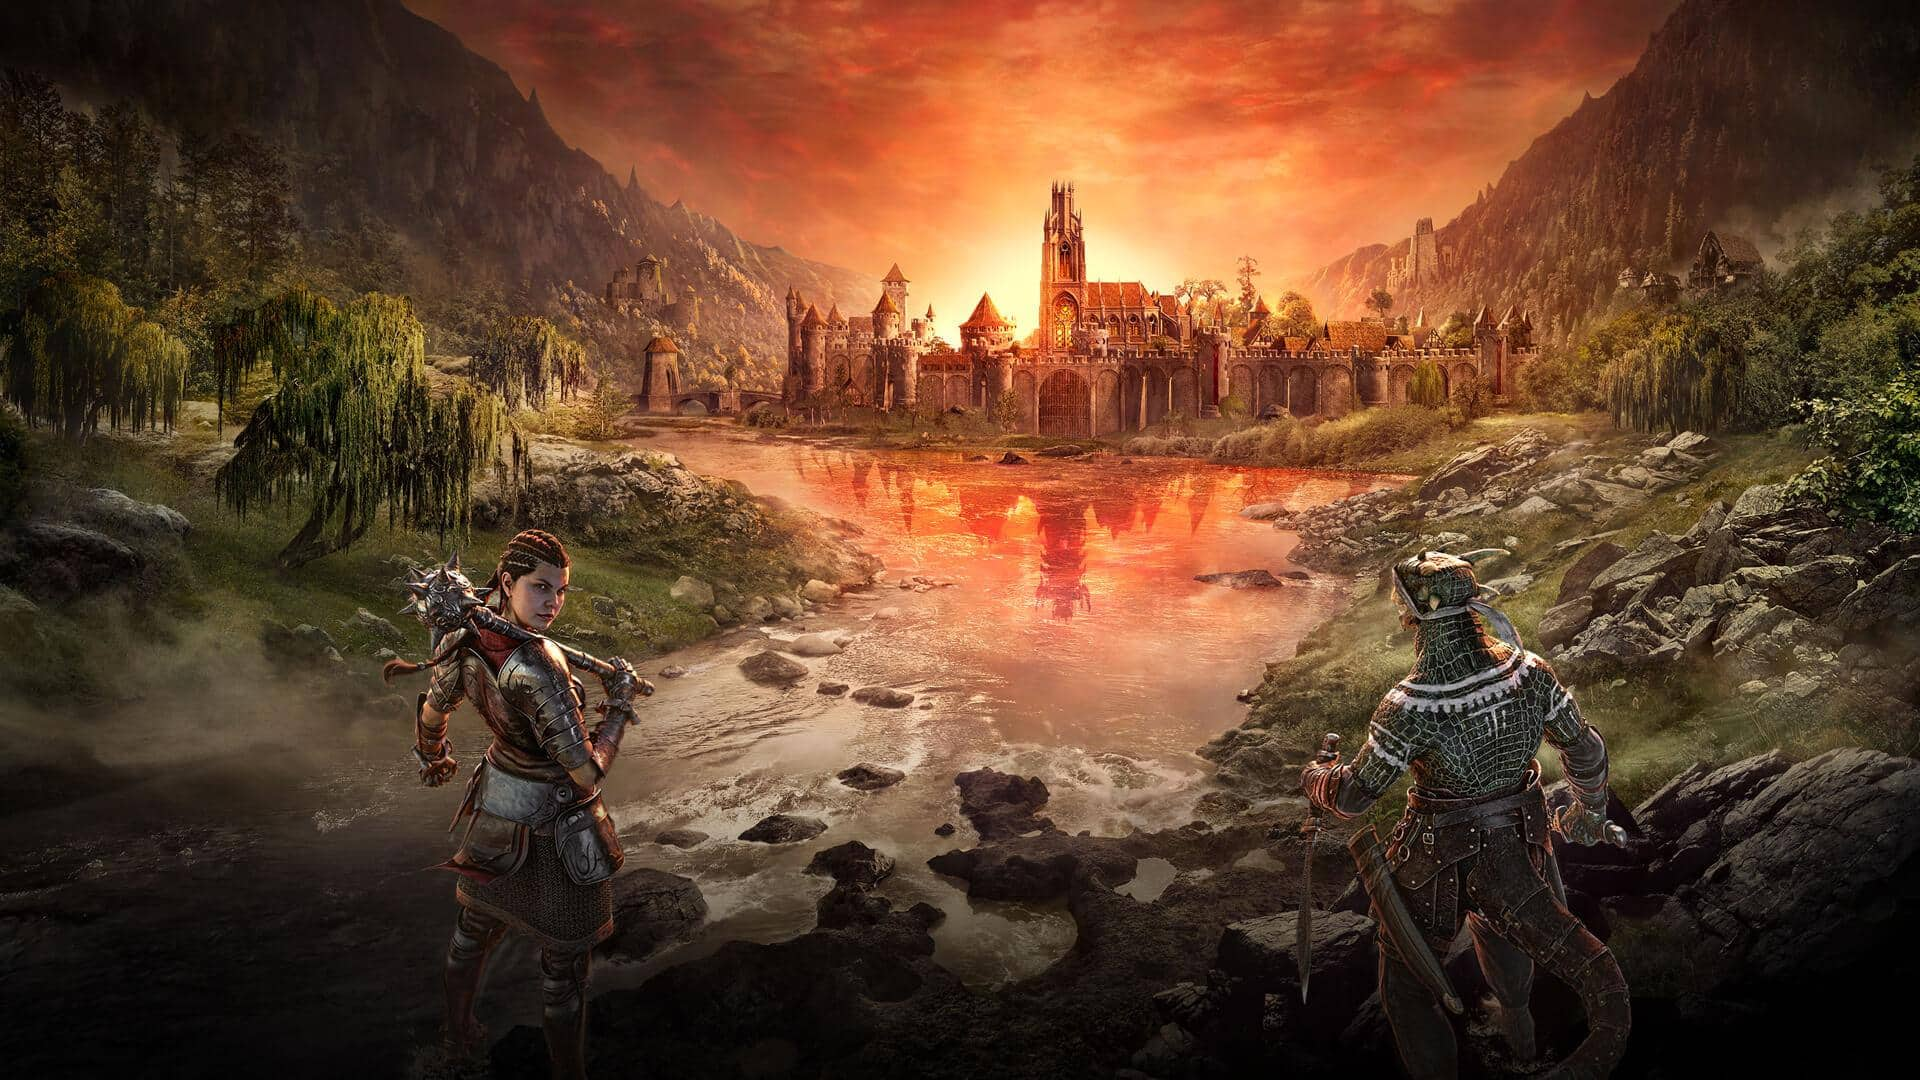 The Elder Scrolls Online: Blackwood Artwork of a human and lizard warrior standing outside a regal castle at sunset, with a twisted version of the castle visible in the river's reflection.